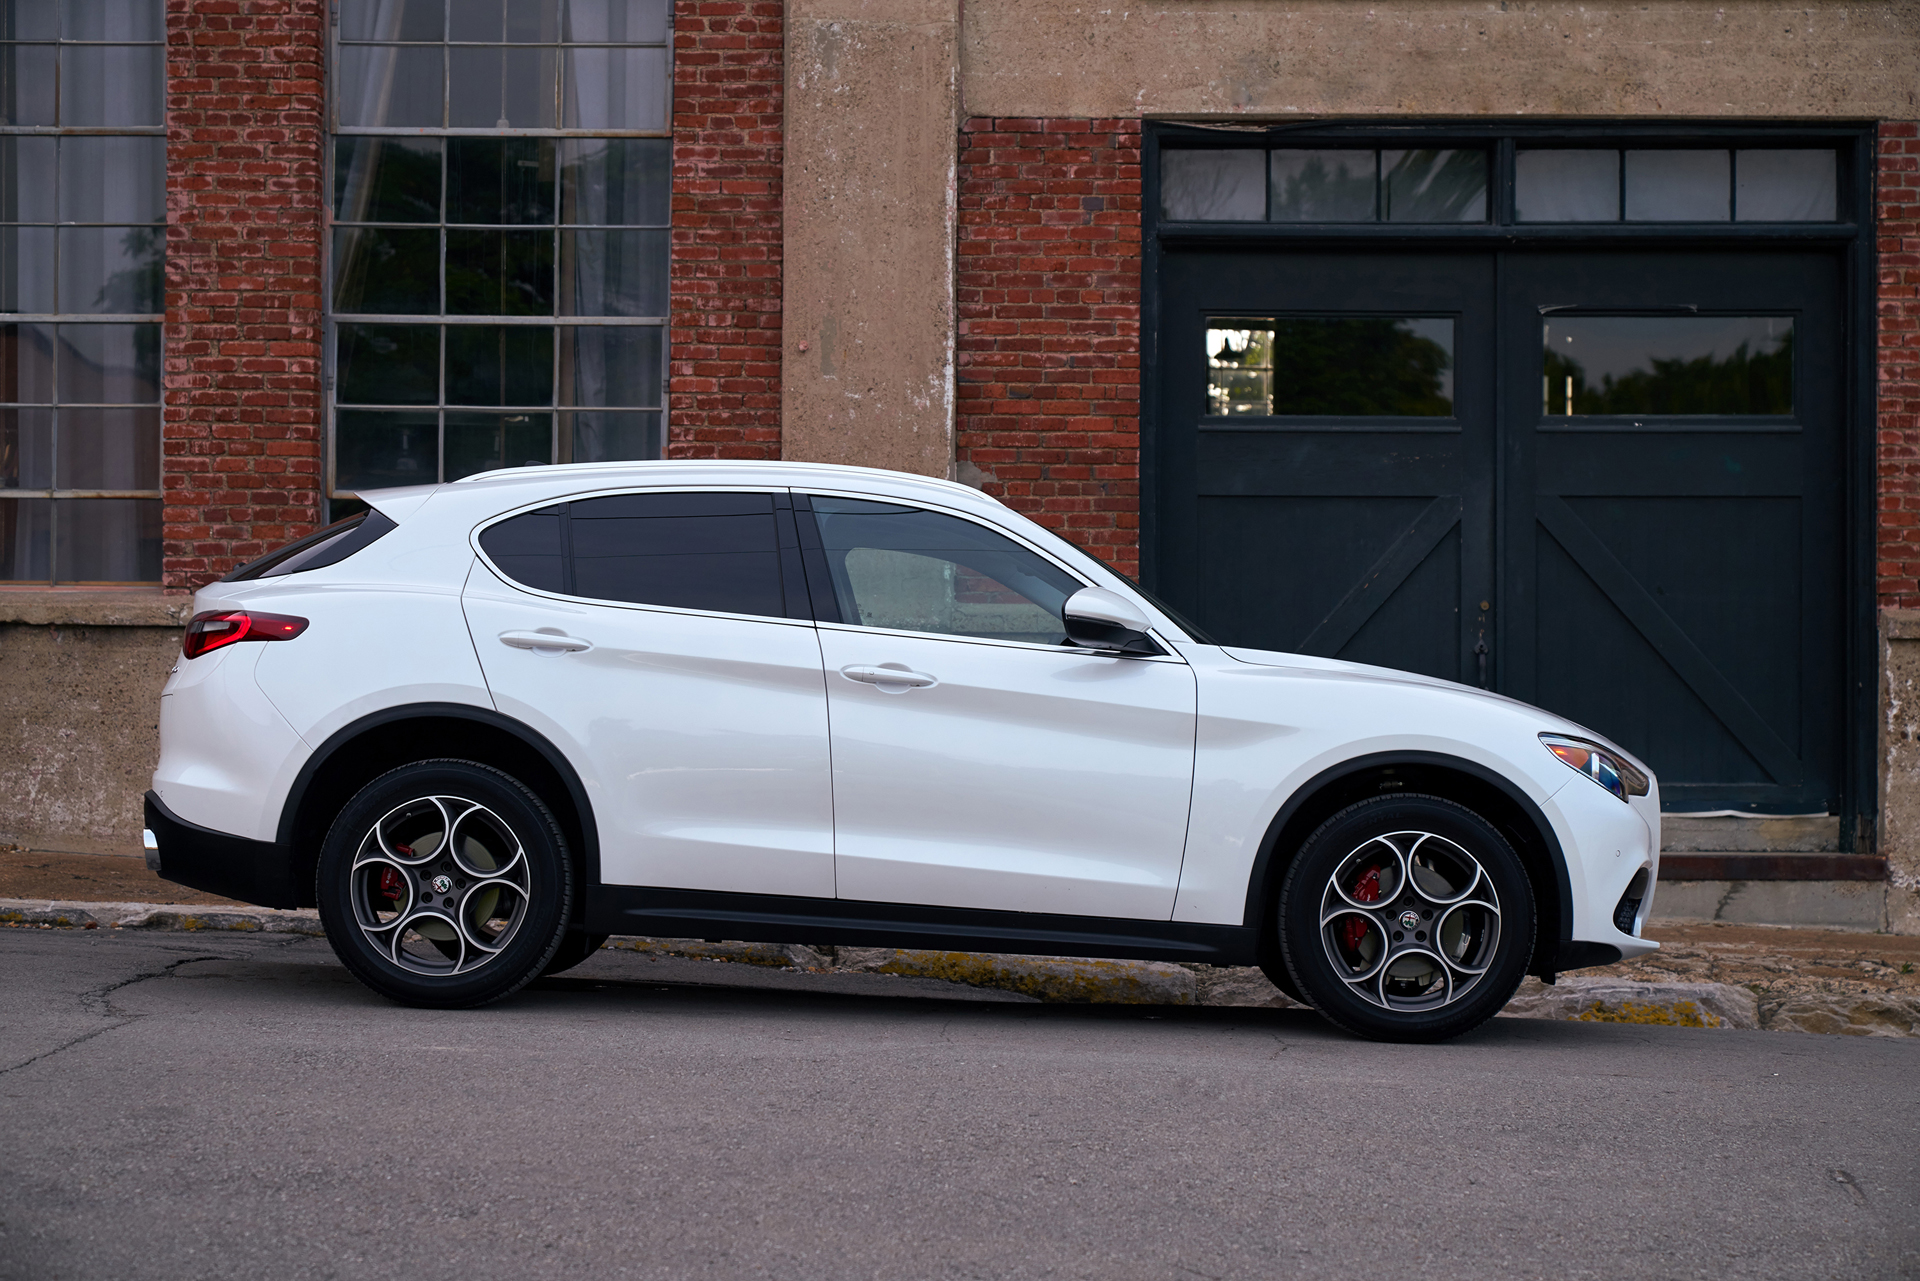 alfa romeo stelvio first drive review the suv we 39 ve been waiting for autozaurus. Black Bedroom Furniture Sets. Home Design Ideas